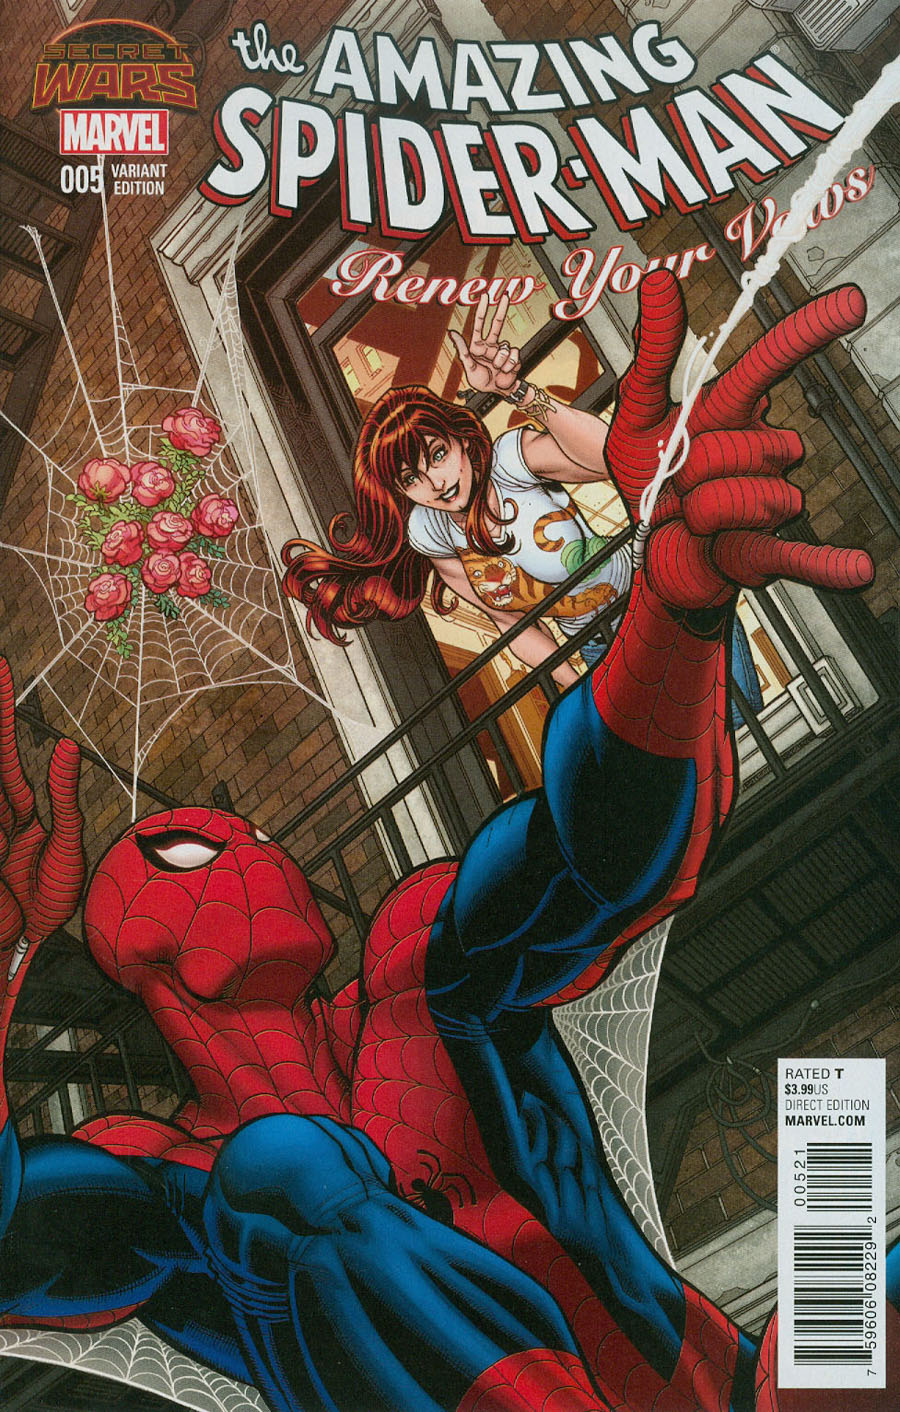 Amazing Spider-Man Renew Your Vows #5 Cover B Incentive Nick Bradshaw Variant Cover (Secret Wars Warzones Tie-In)